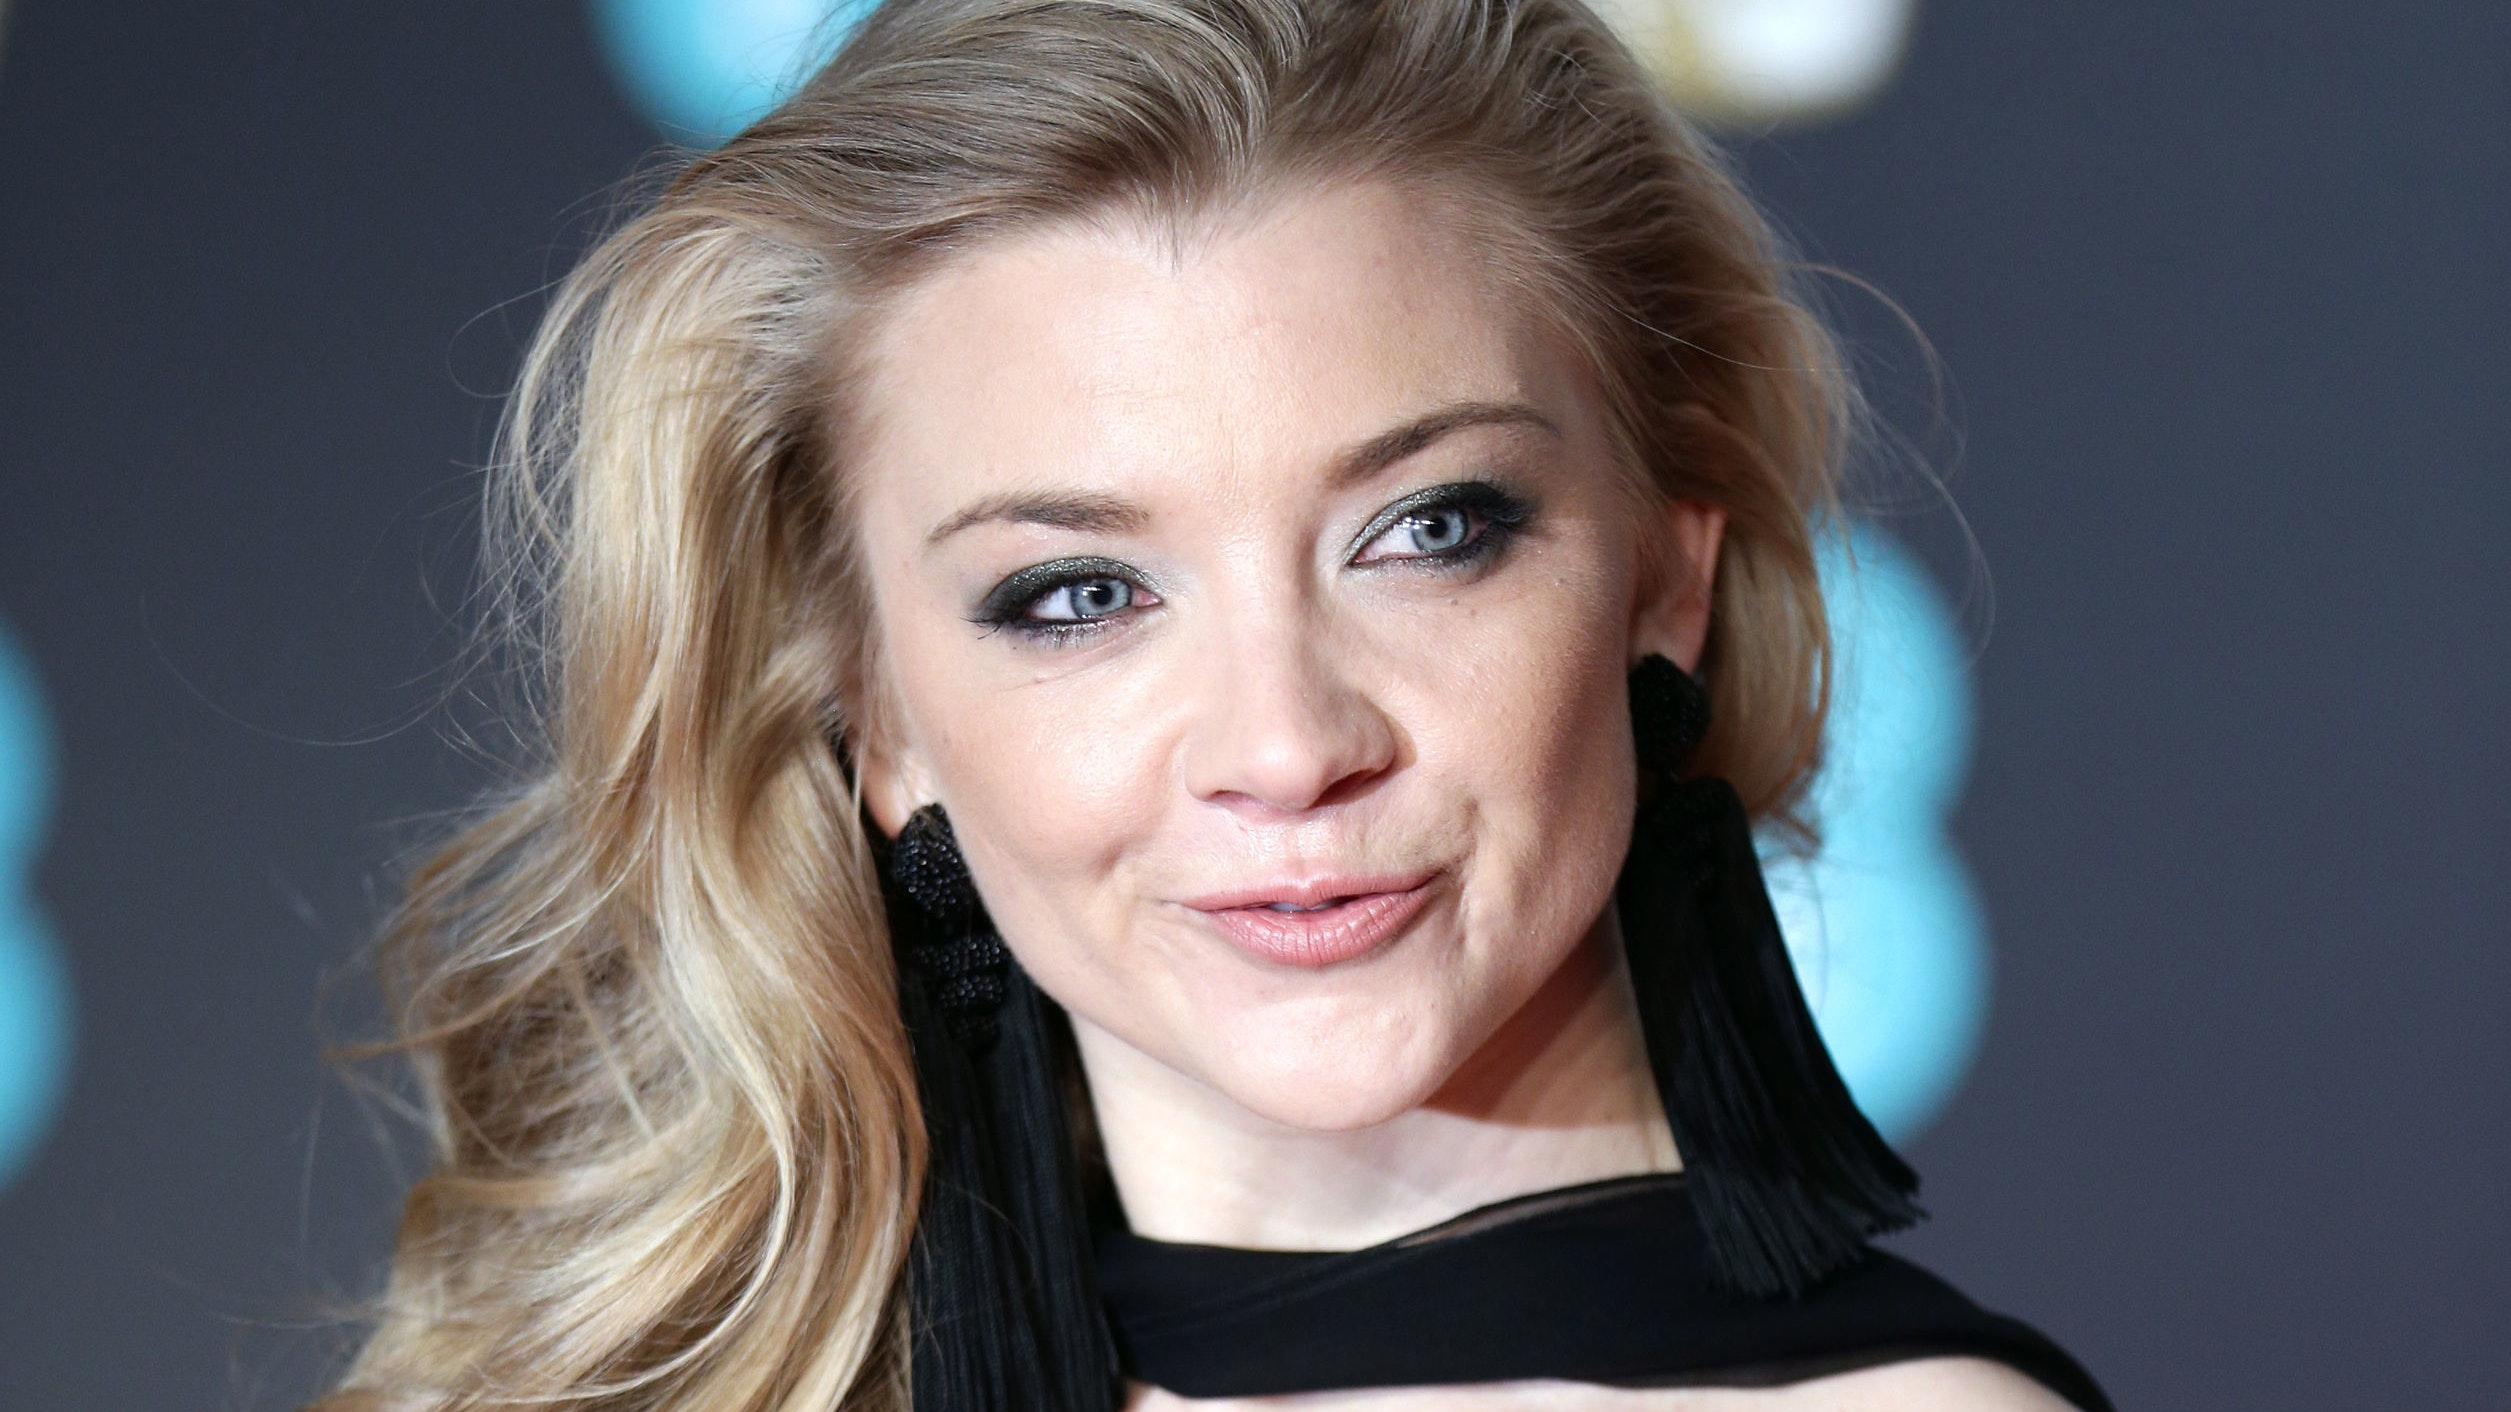 Photo Natalie Dormer naked (64 photos), Sexy, Paparazzi, Twitter, swimsuit 2019